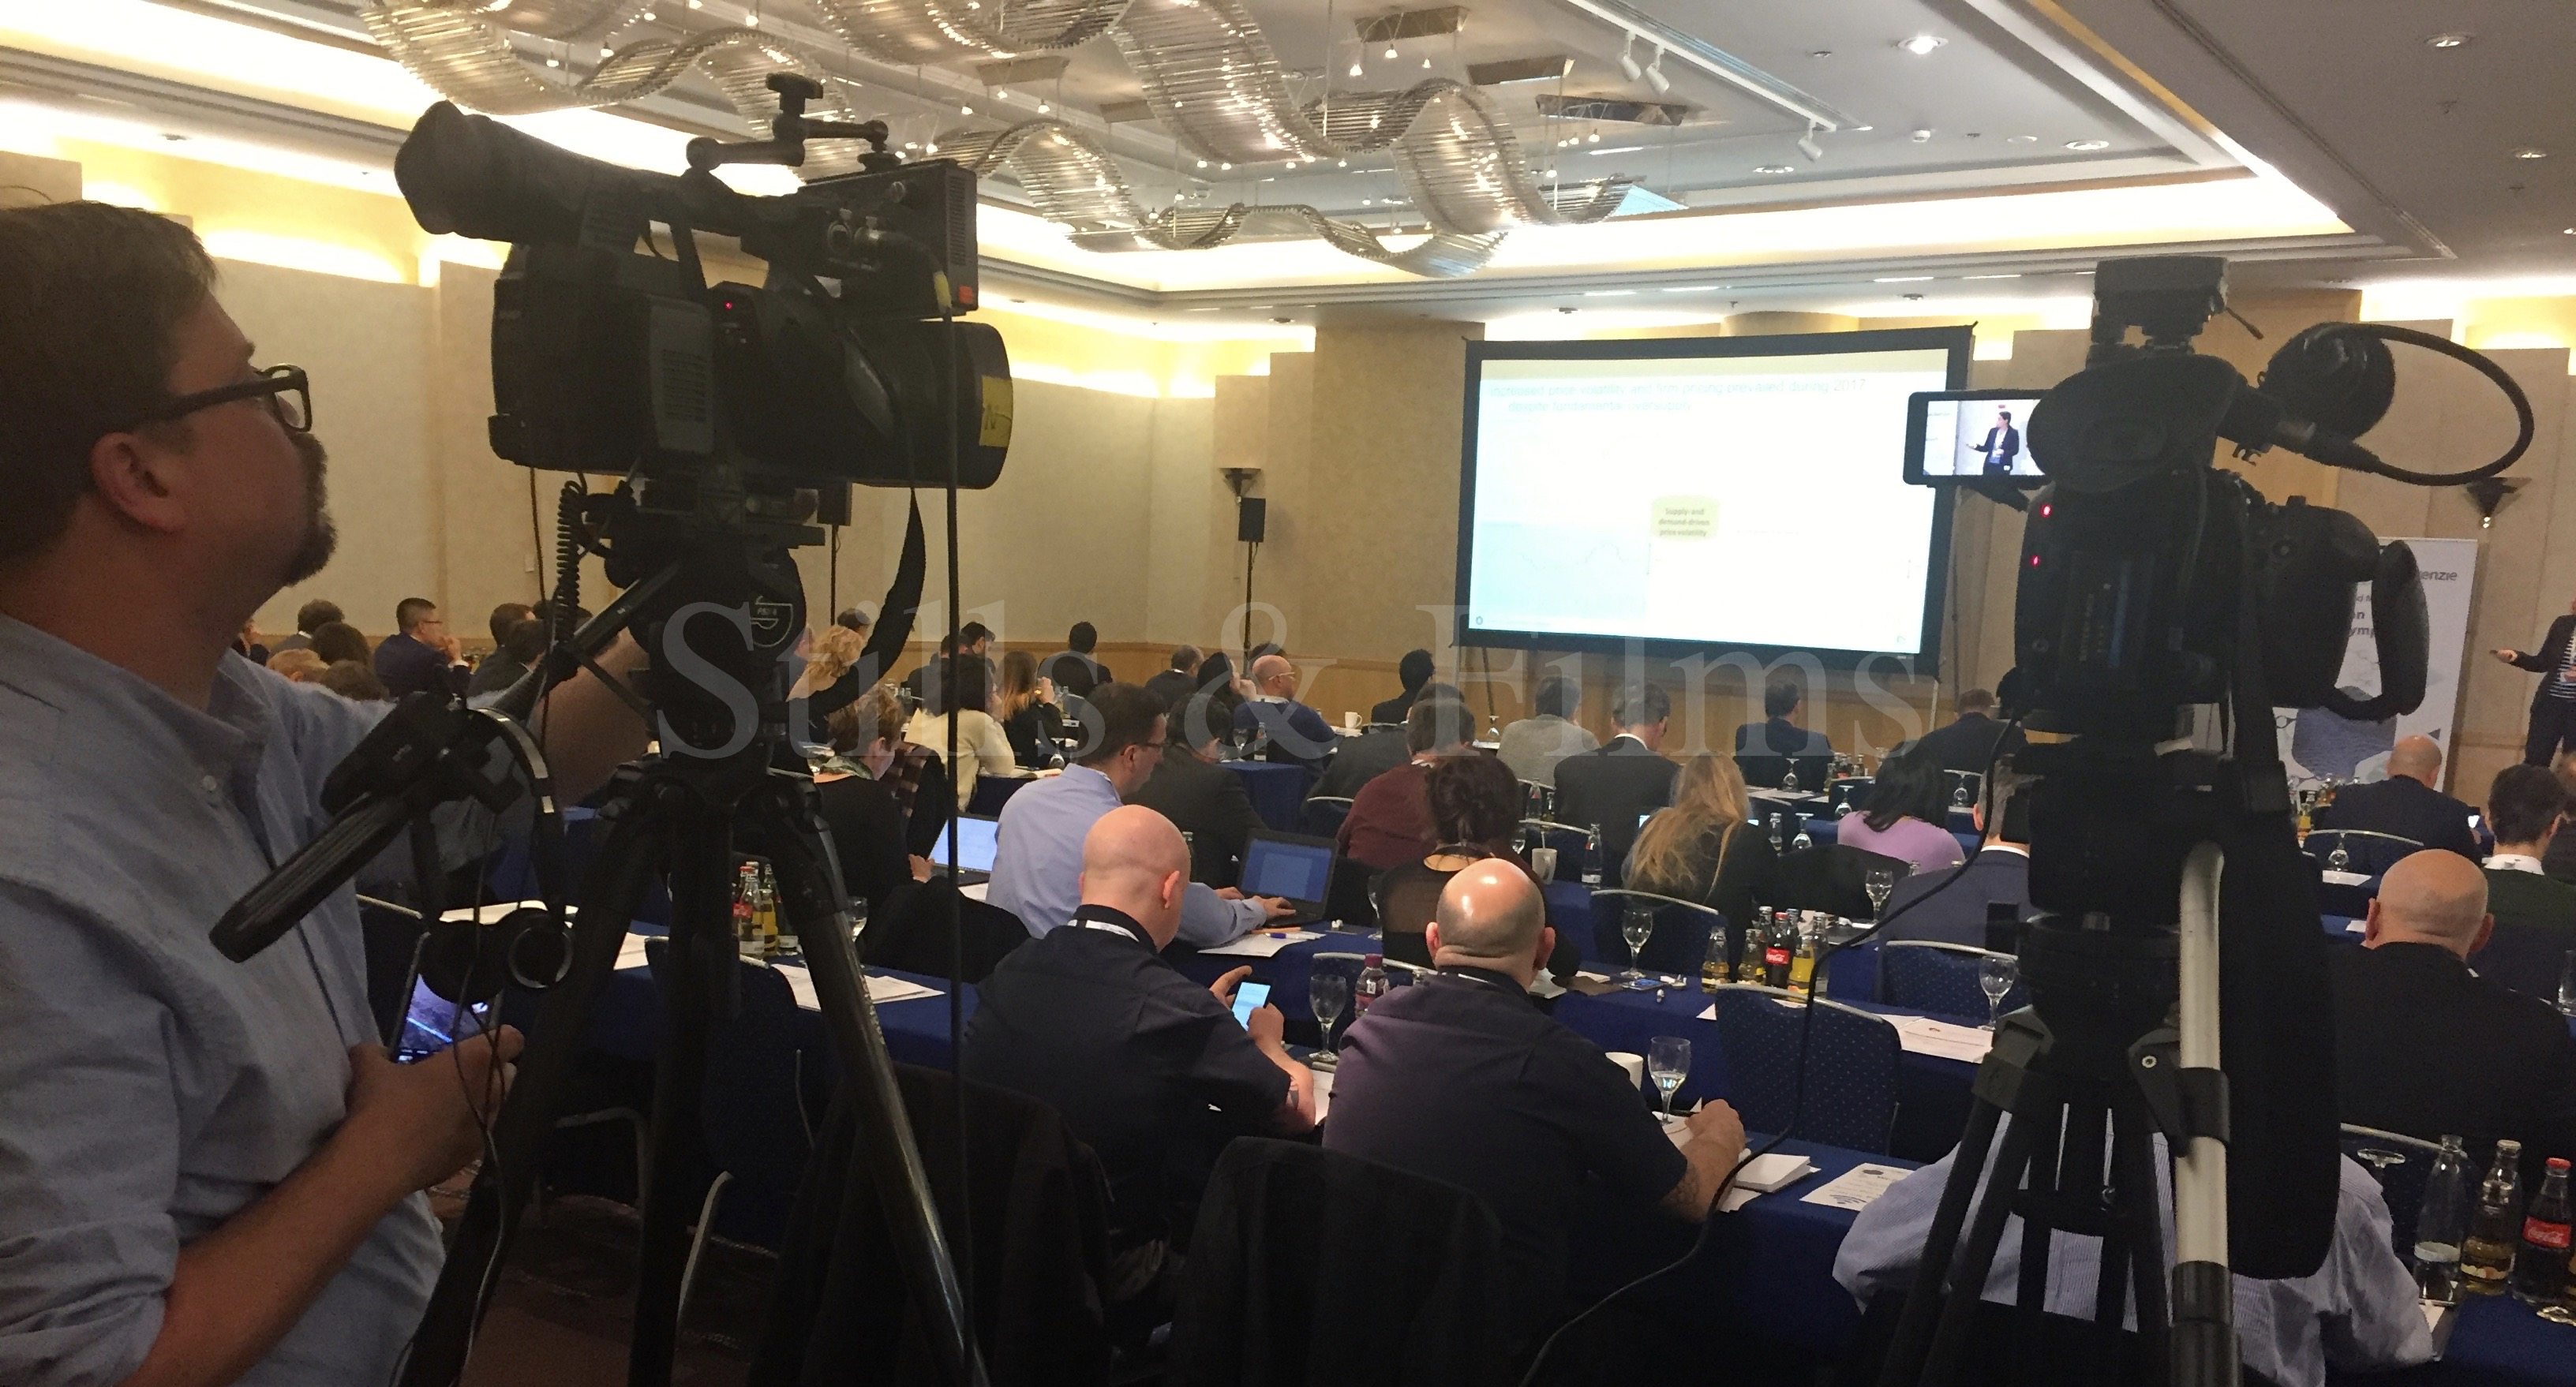 Stills & Films video crews covering a conference for a US client